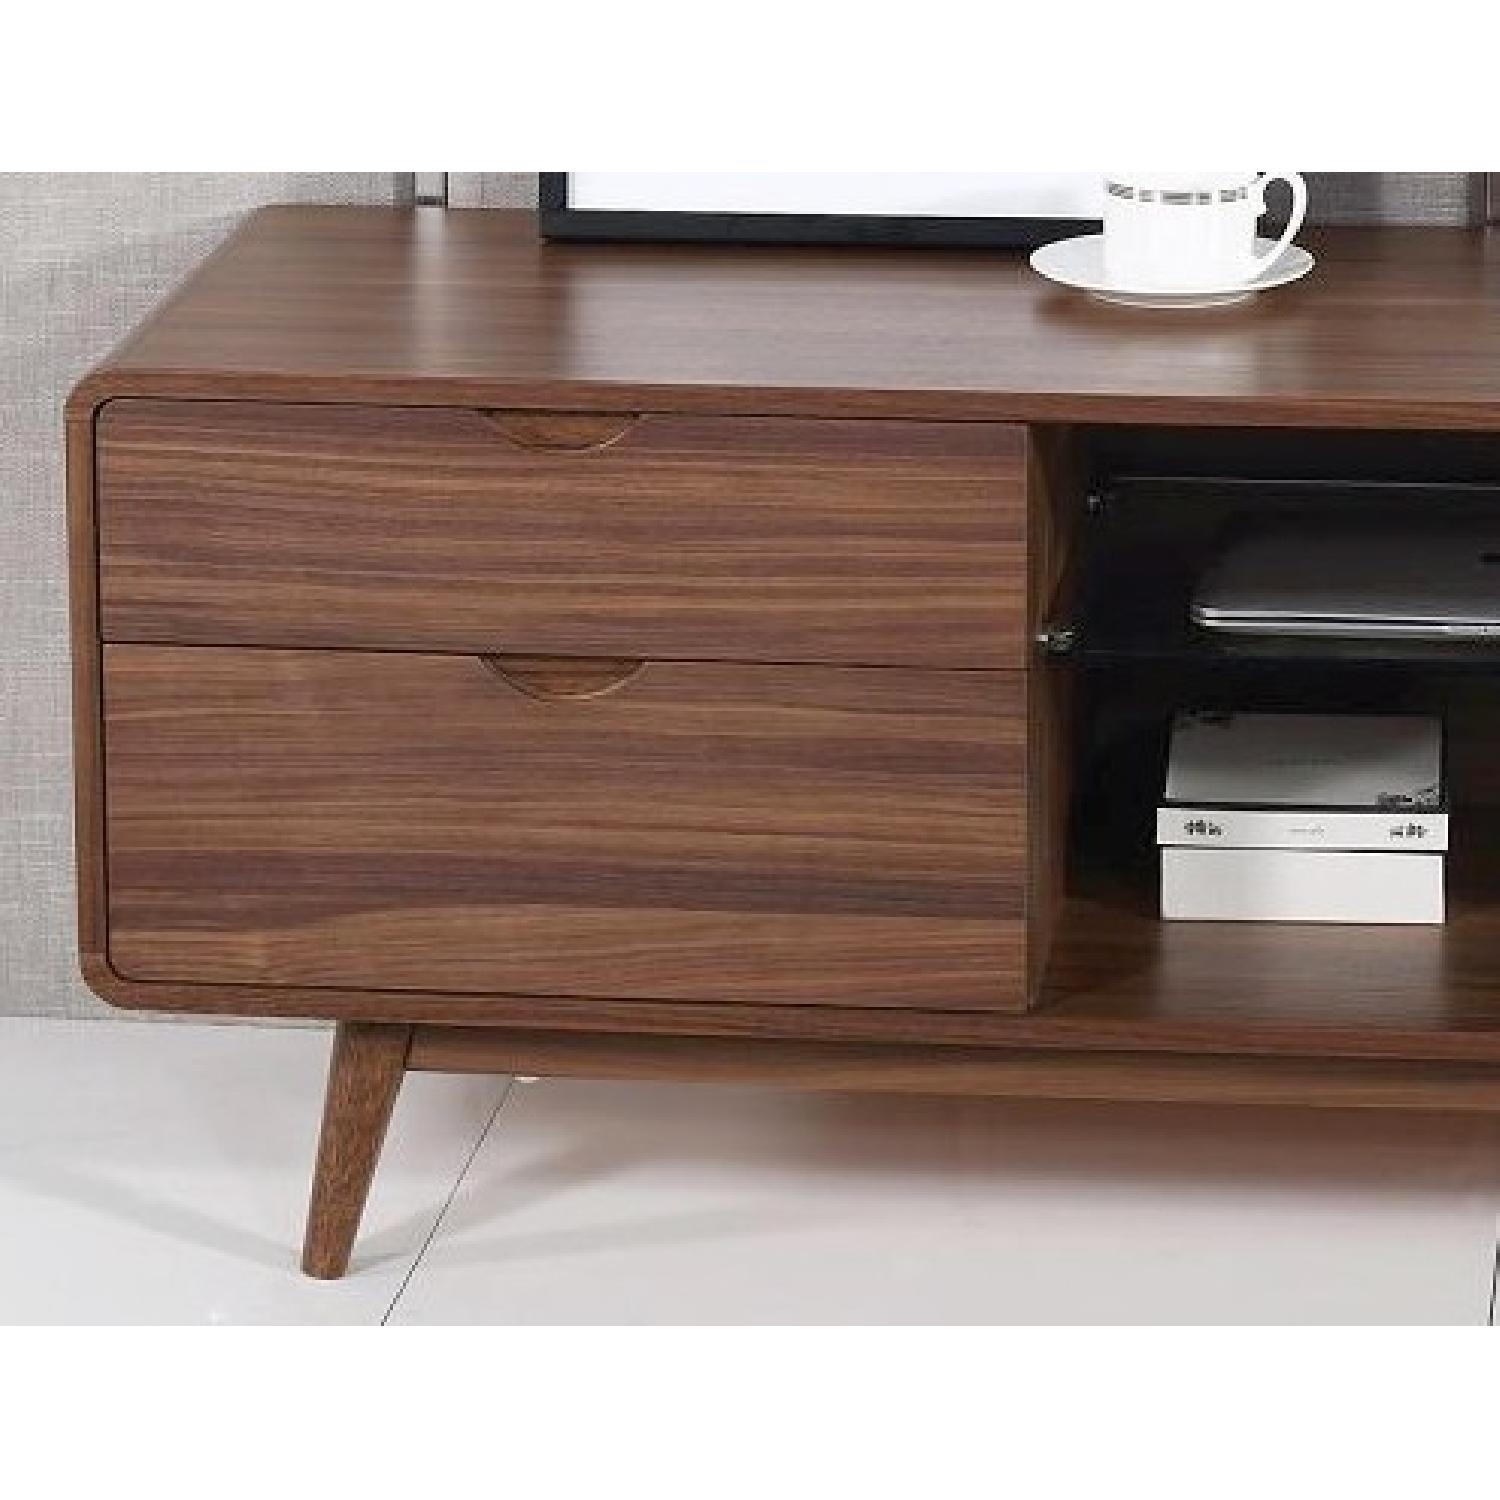 Mid Century Style TV Stand in Walnut Finish w/ 4 Drawers & G-0